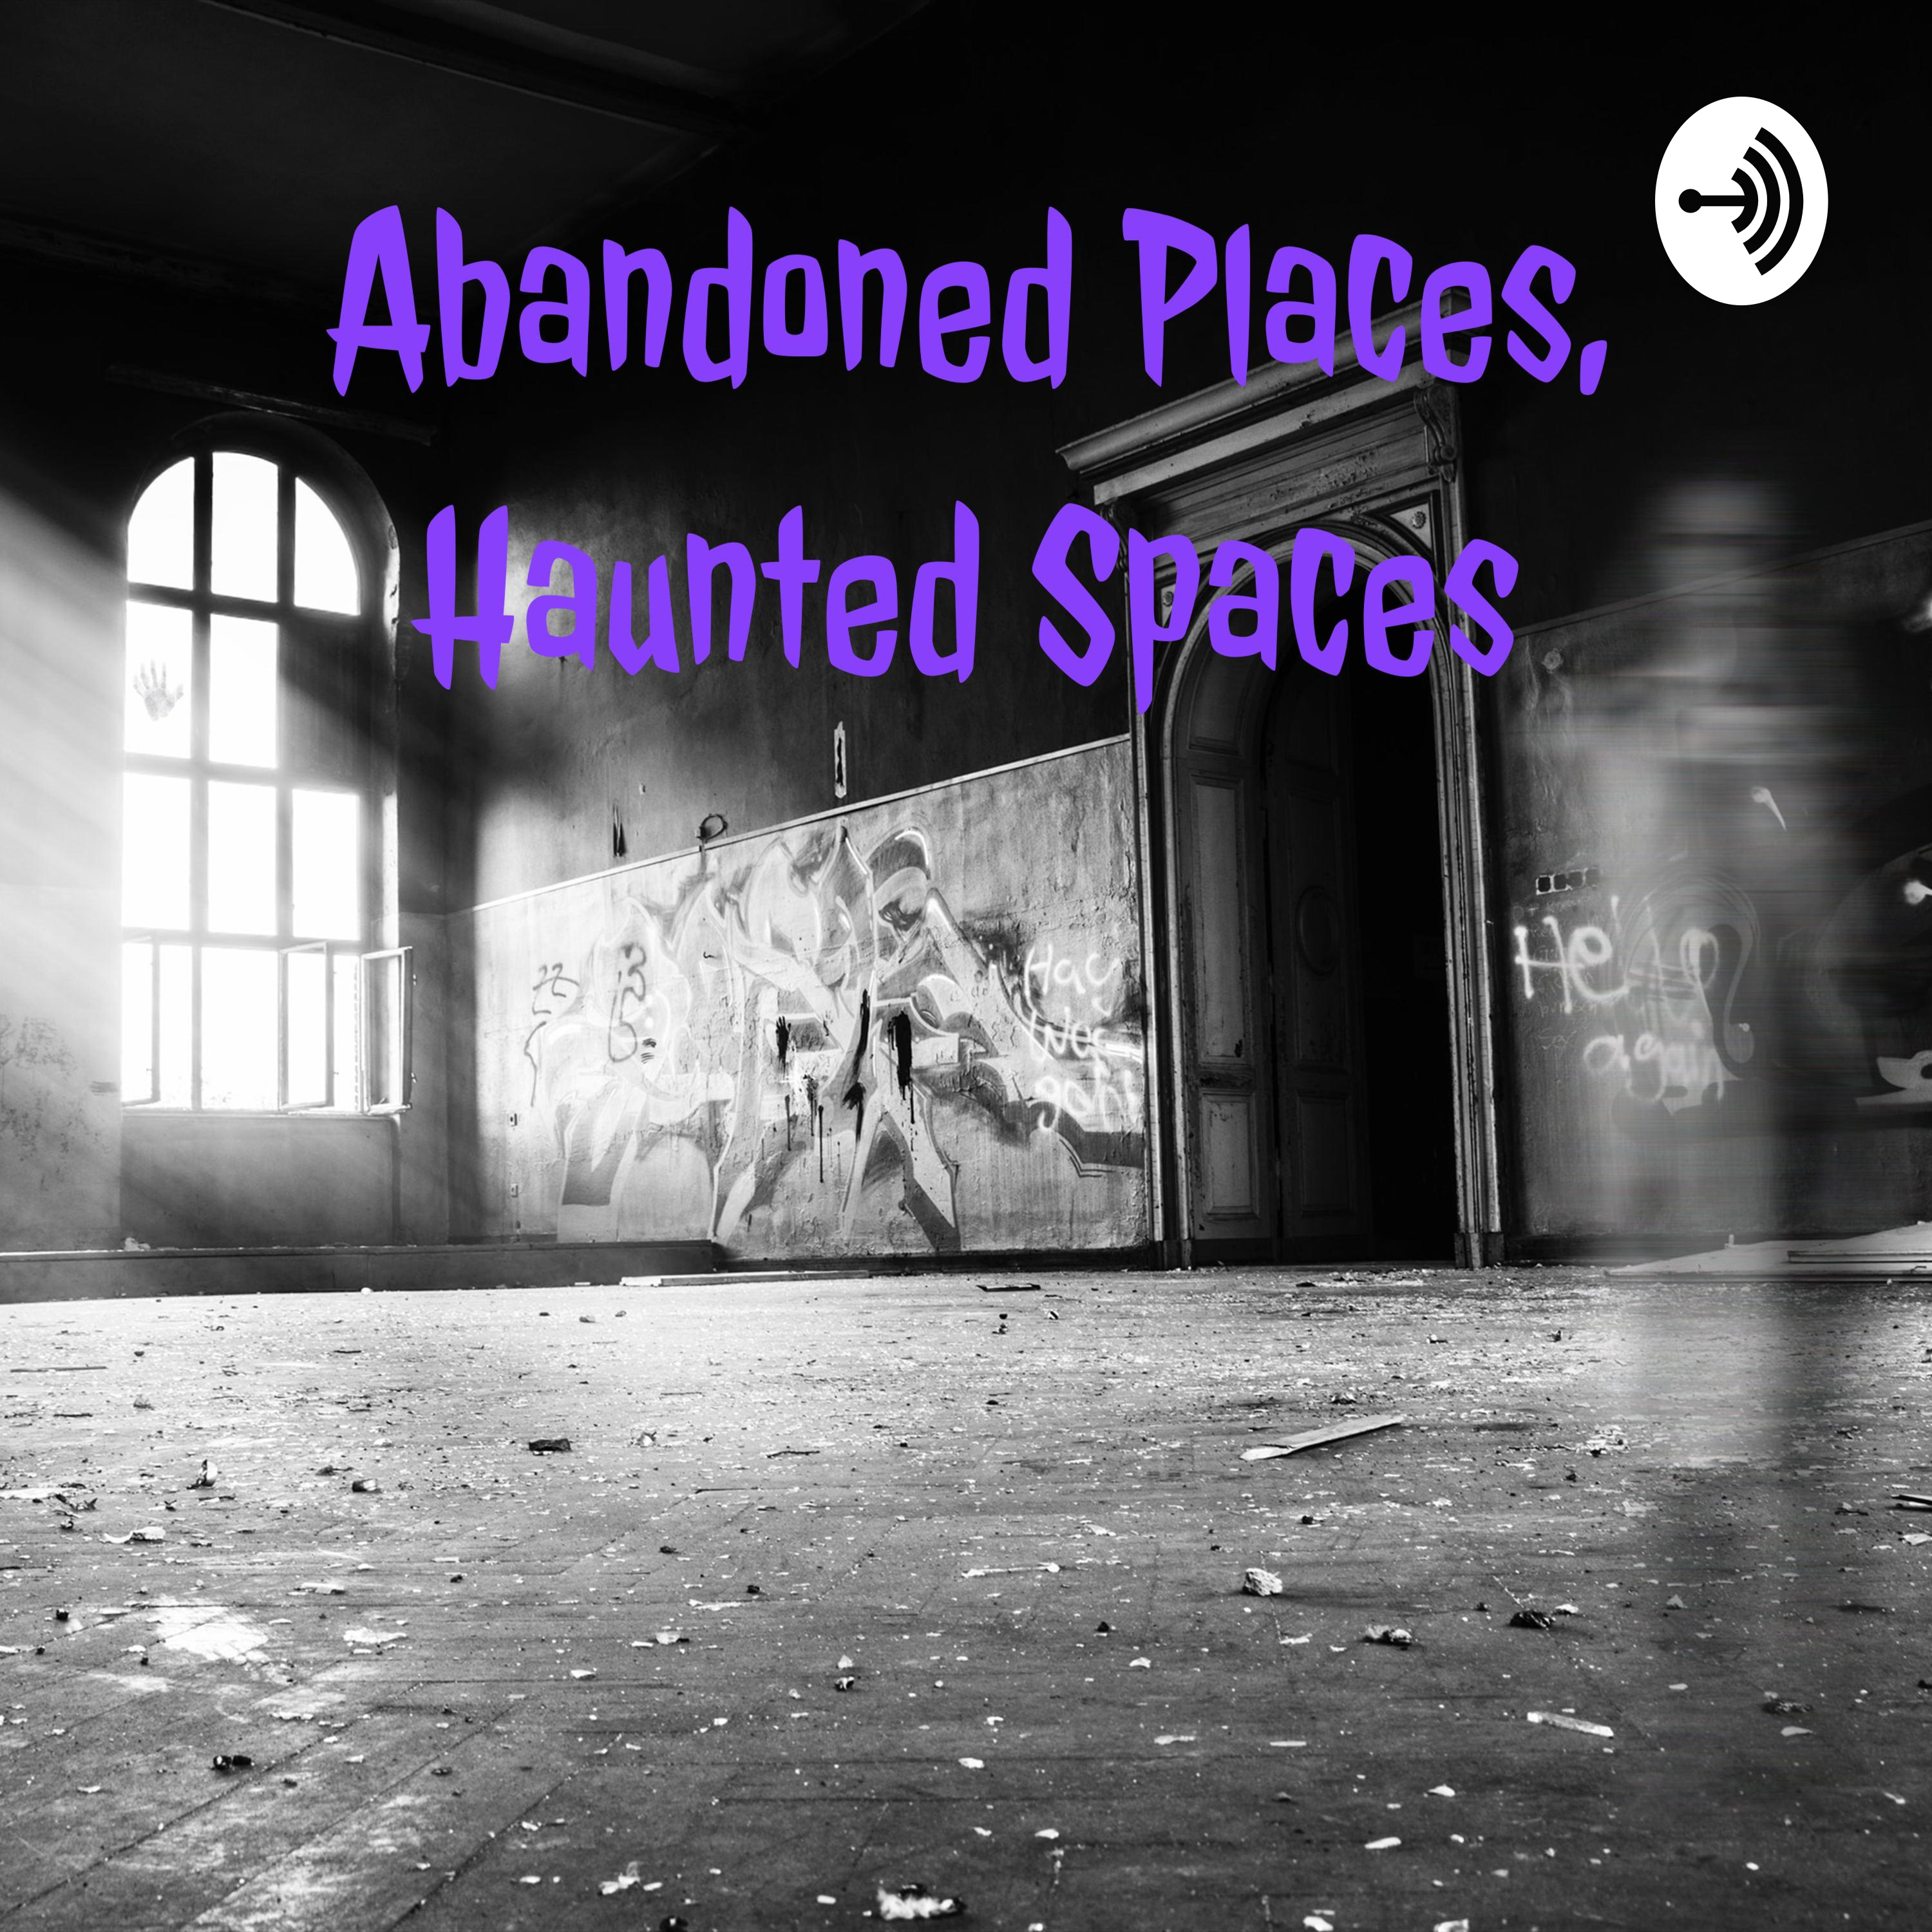 Abandoned Places Haunted Spaces (Trailer)